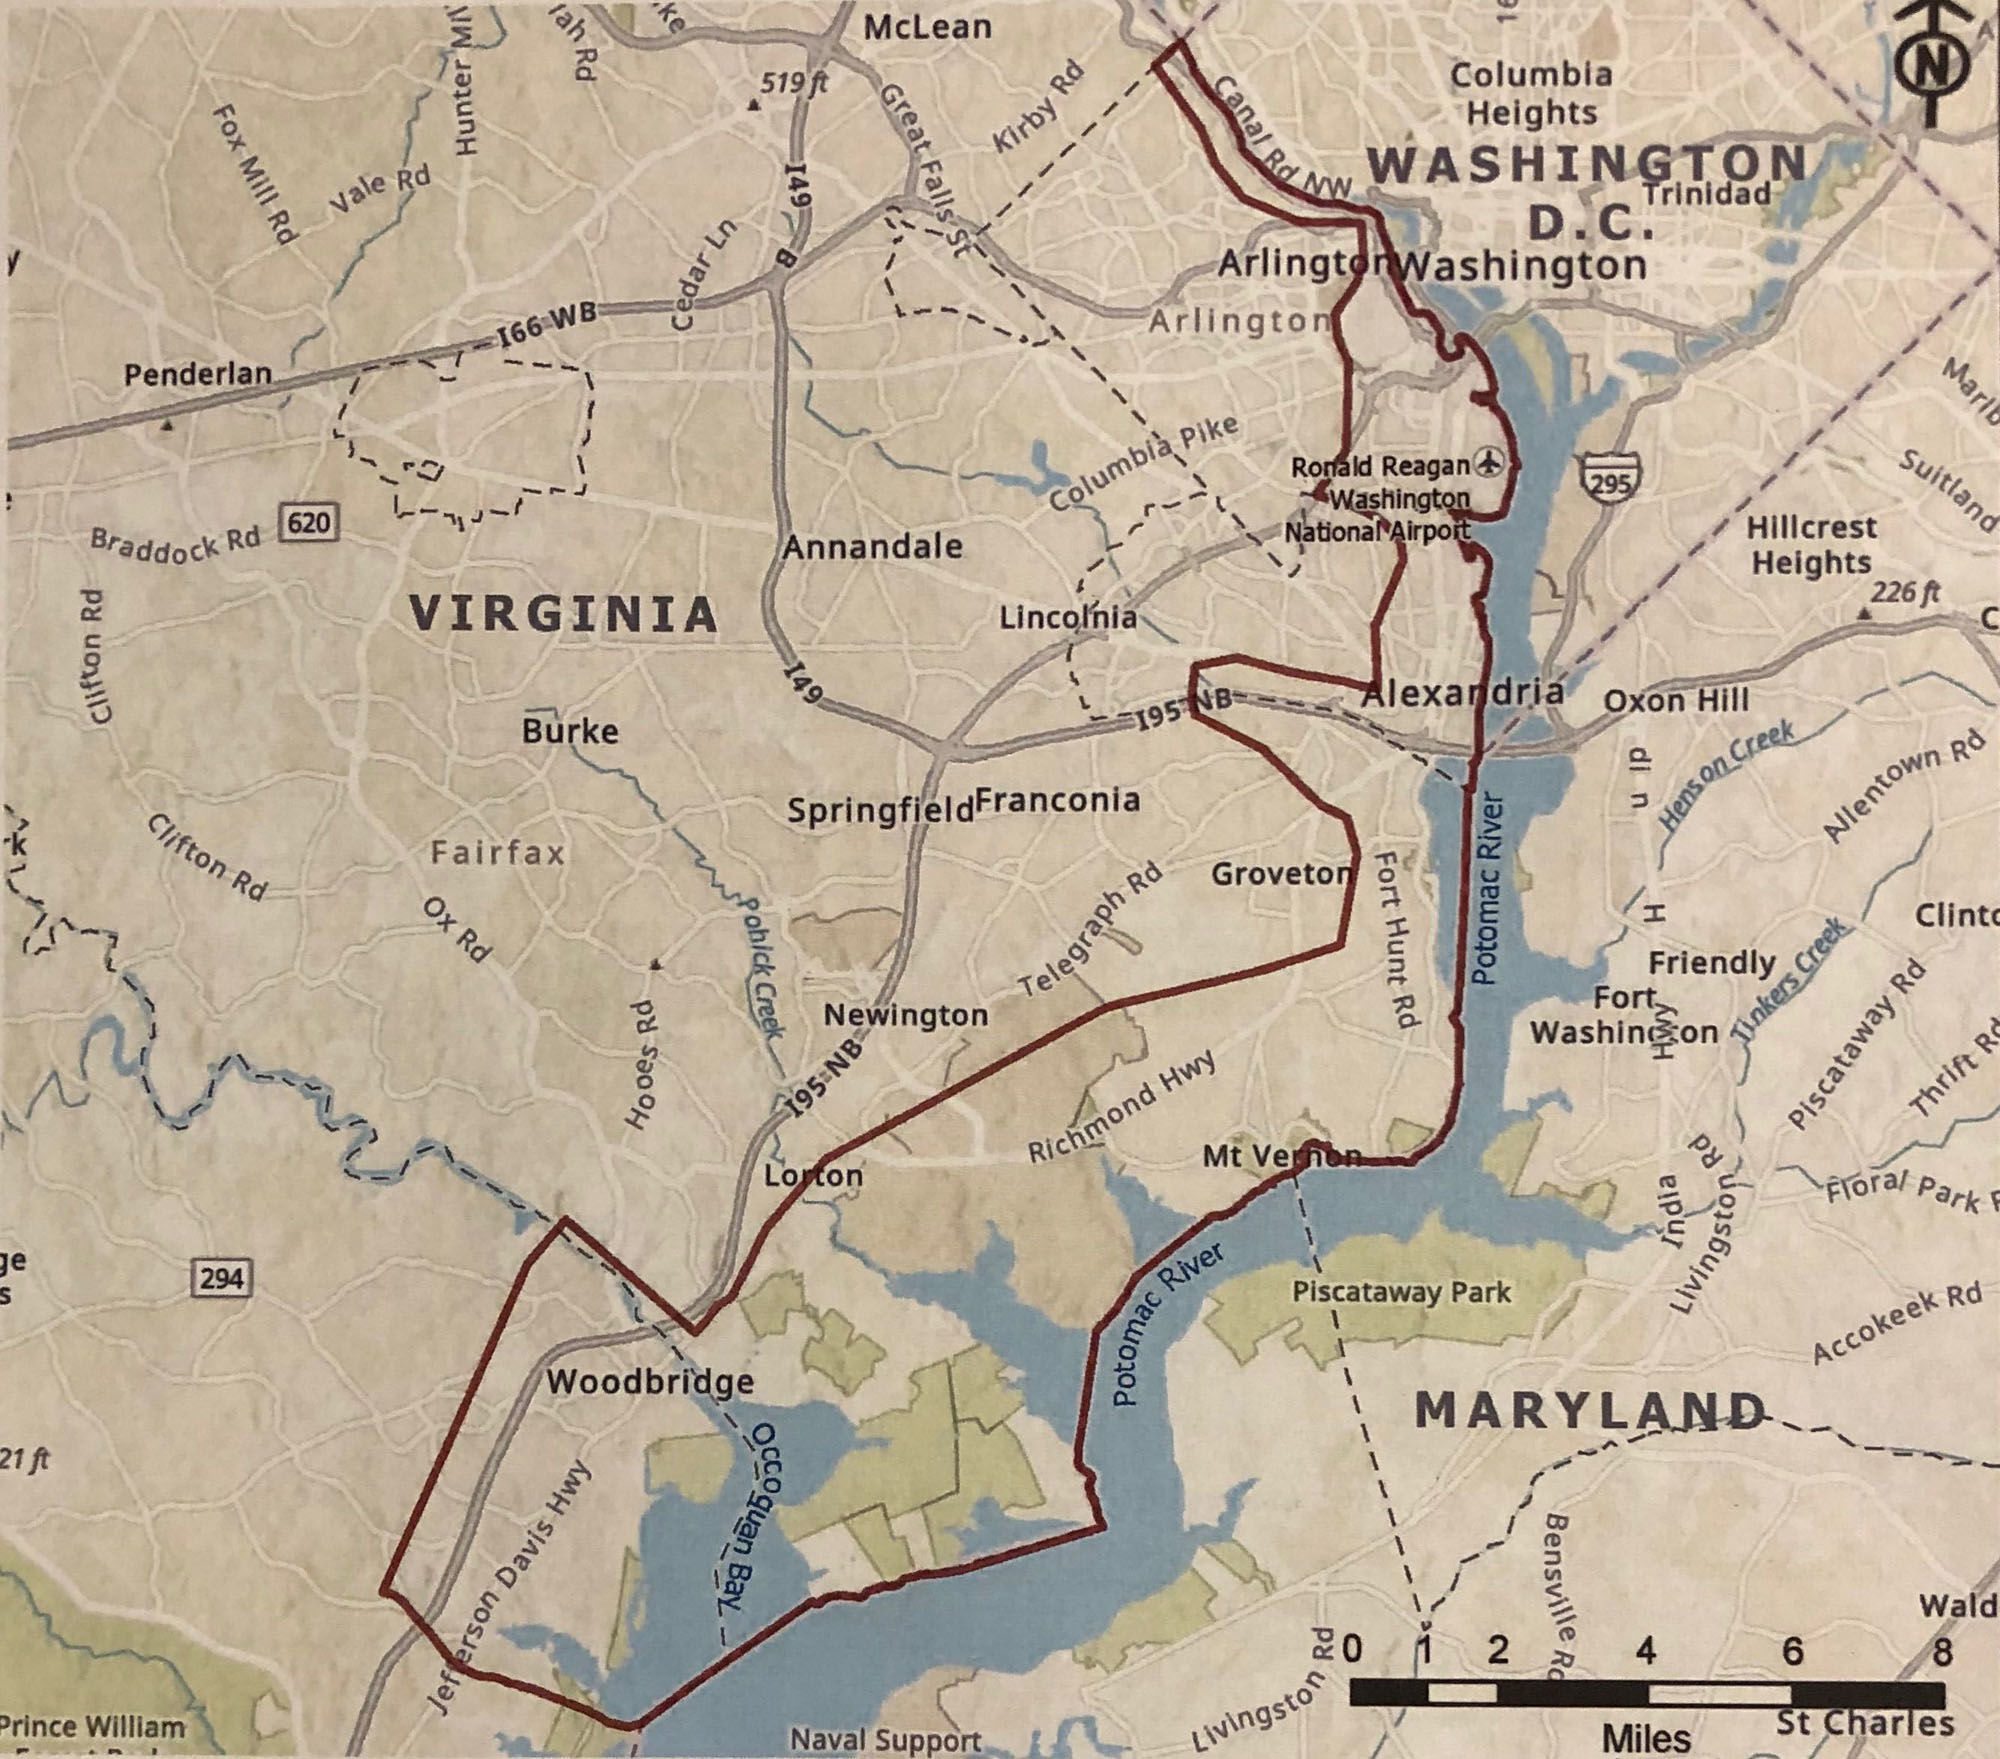 Westlake Legal Group coastal_flood_3 Study will take a long, hard look at threat of flooding in Northern Virginia virginia news Local News Latest News George Washington Memorial Parkway Flooding Fairfax County, VA News dick uliano coastal floods Alexandria, VA News